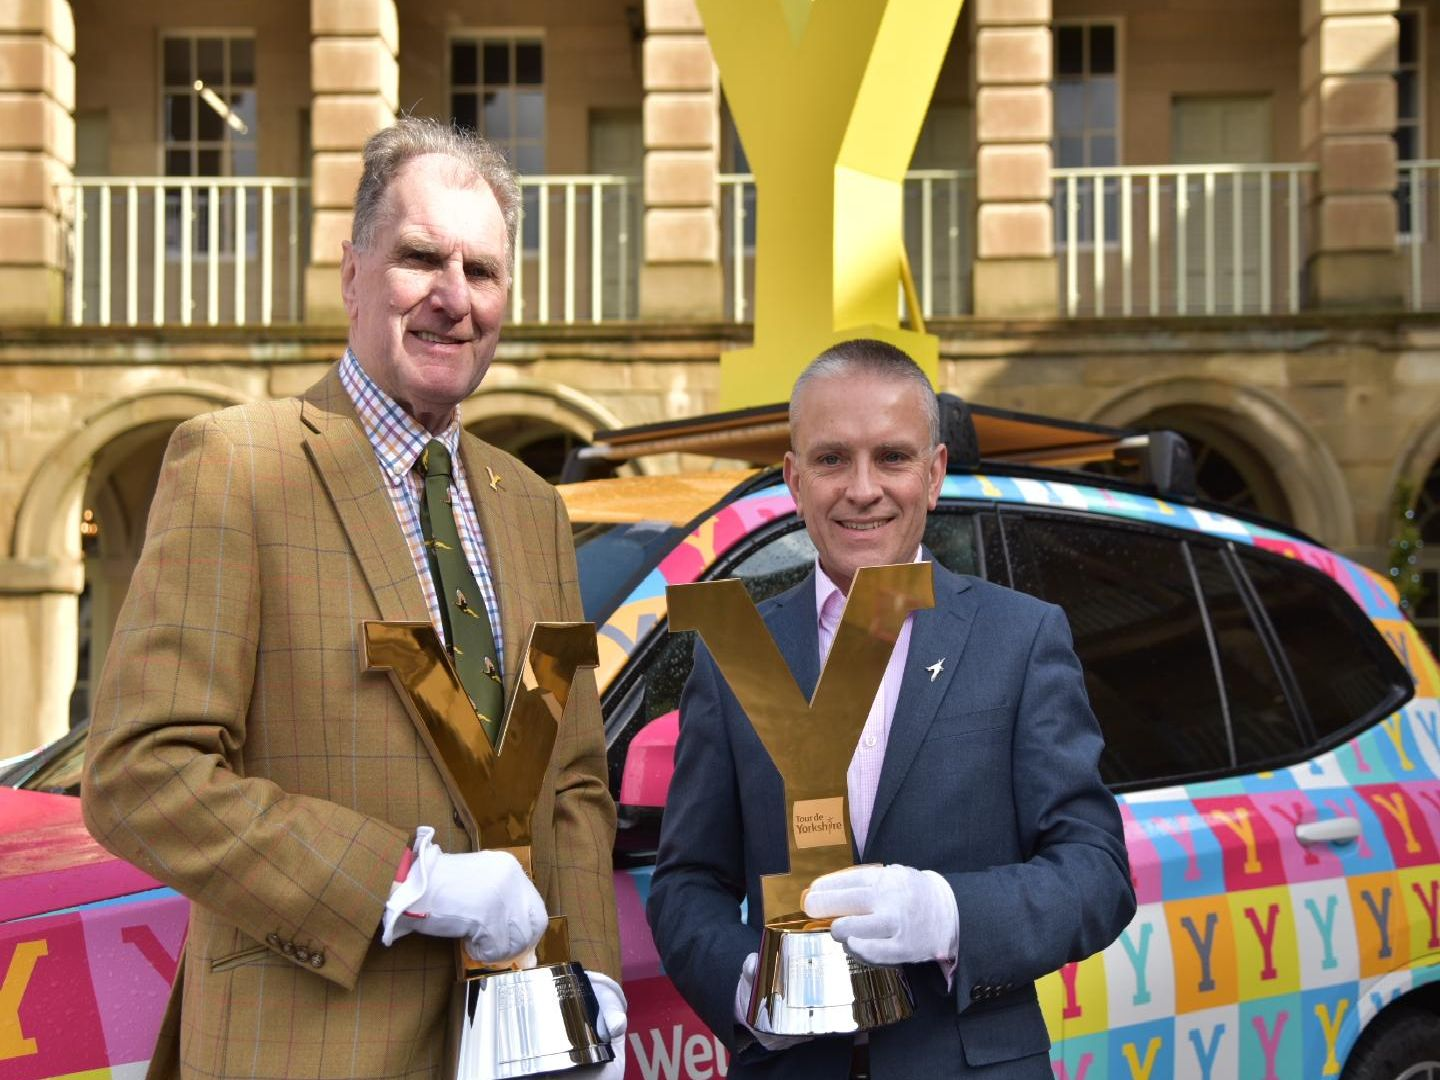 The Tour de Yorkshire trophies at the Piece Hall